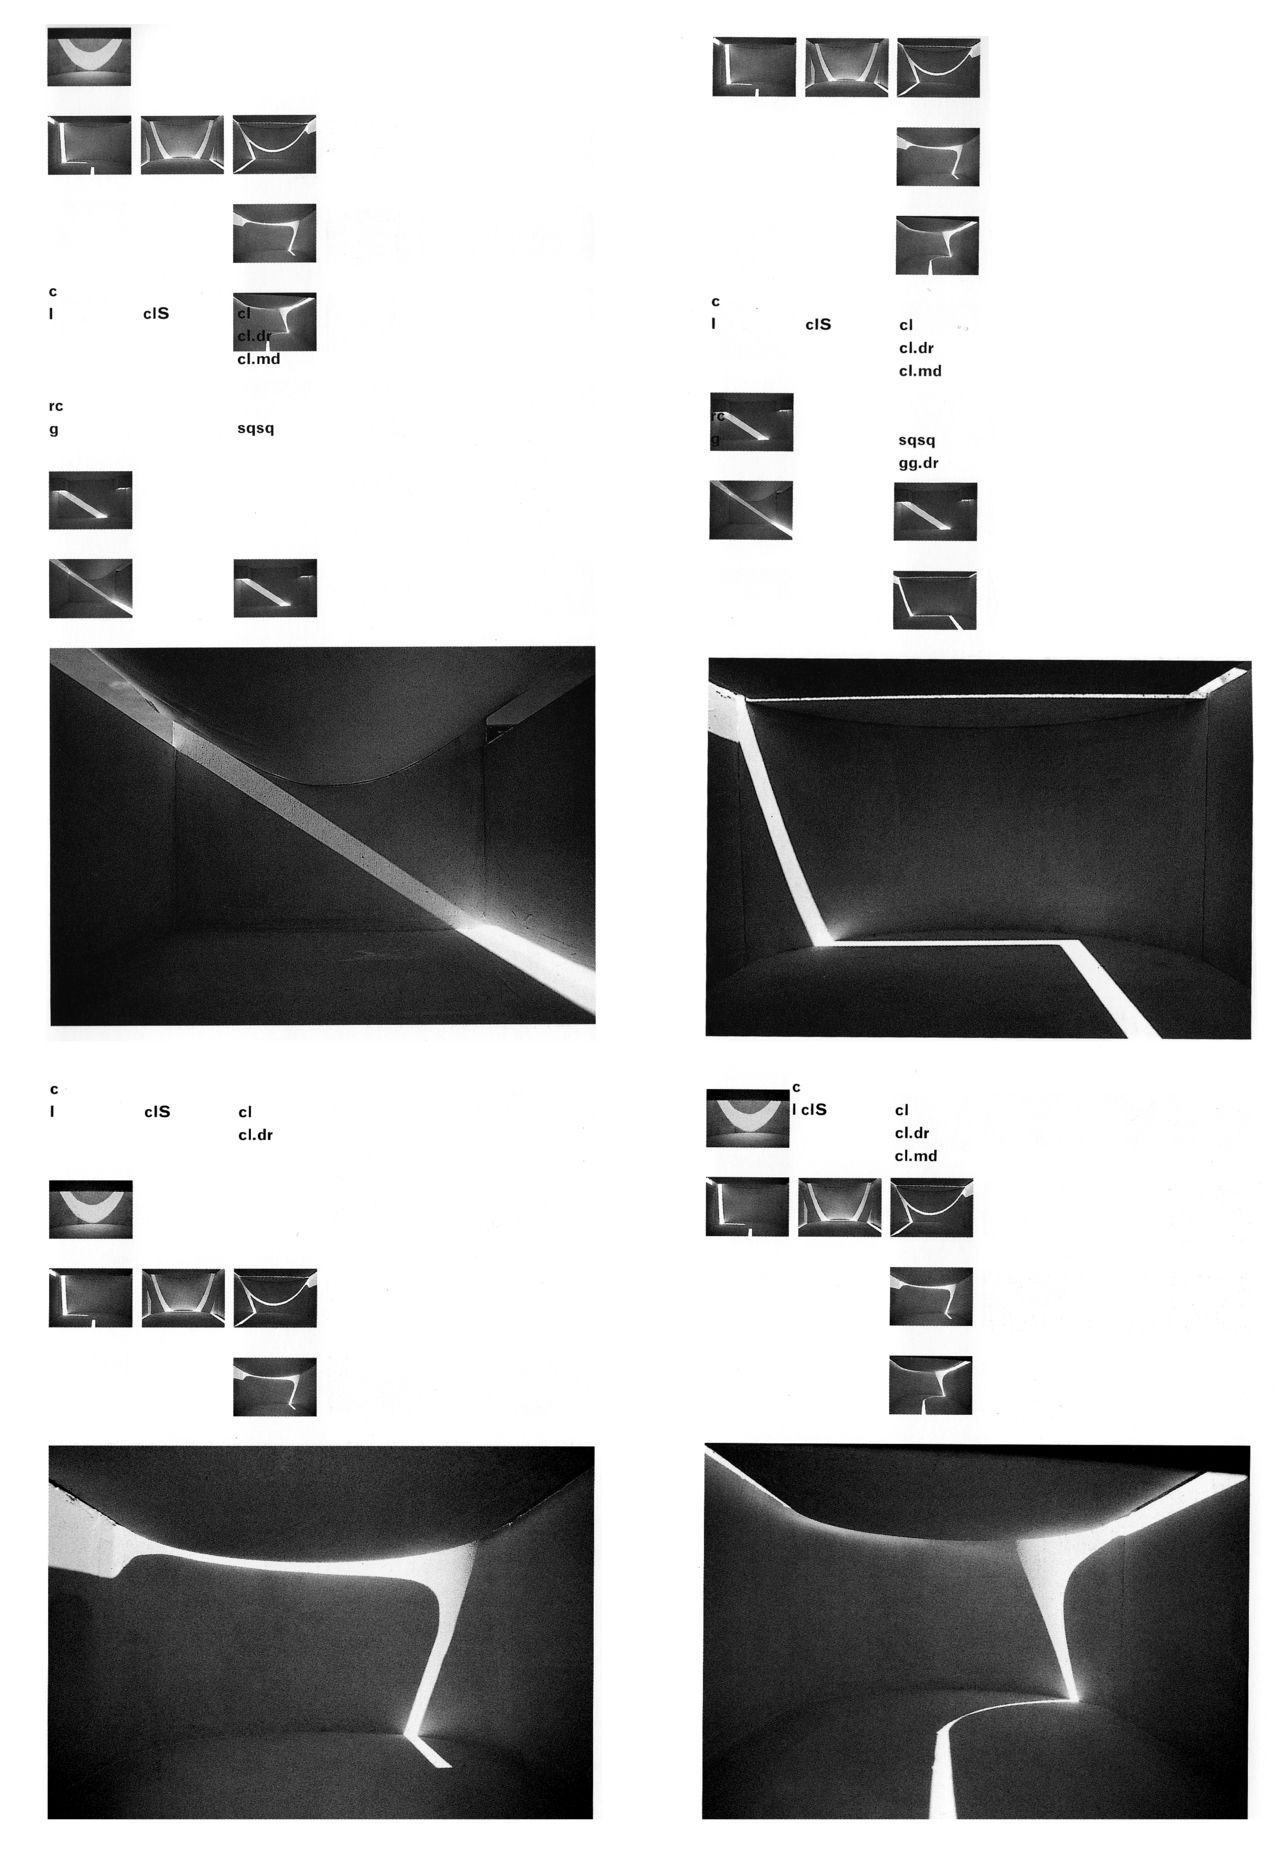 Lighting Architecture Diagram Heil Thermostat Wiring Steven Holl Light Score Studies For The Museum Of